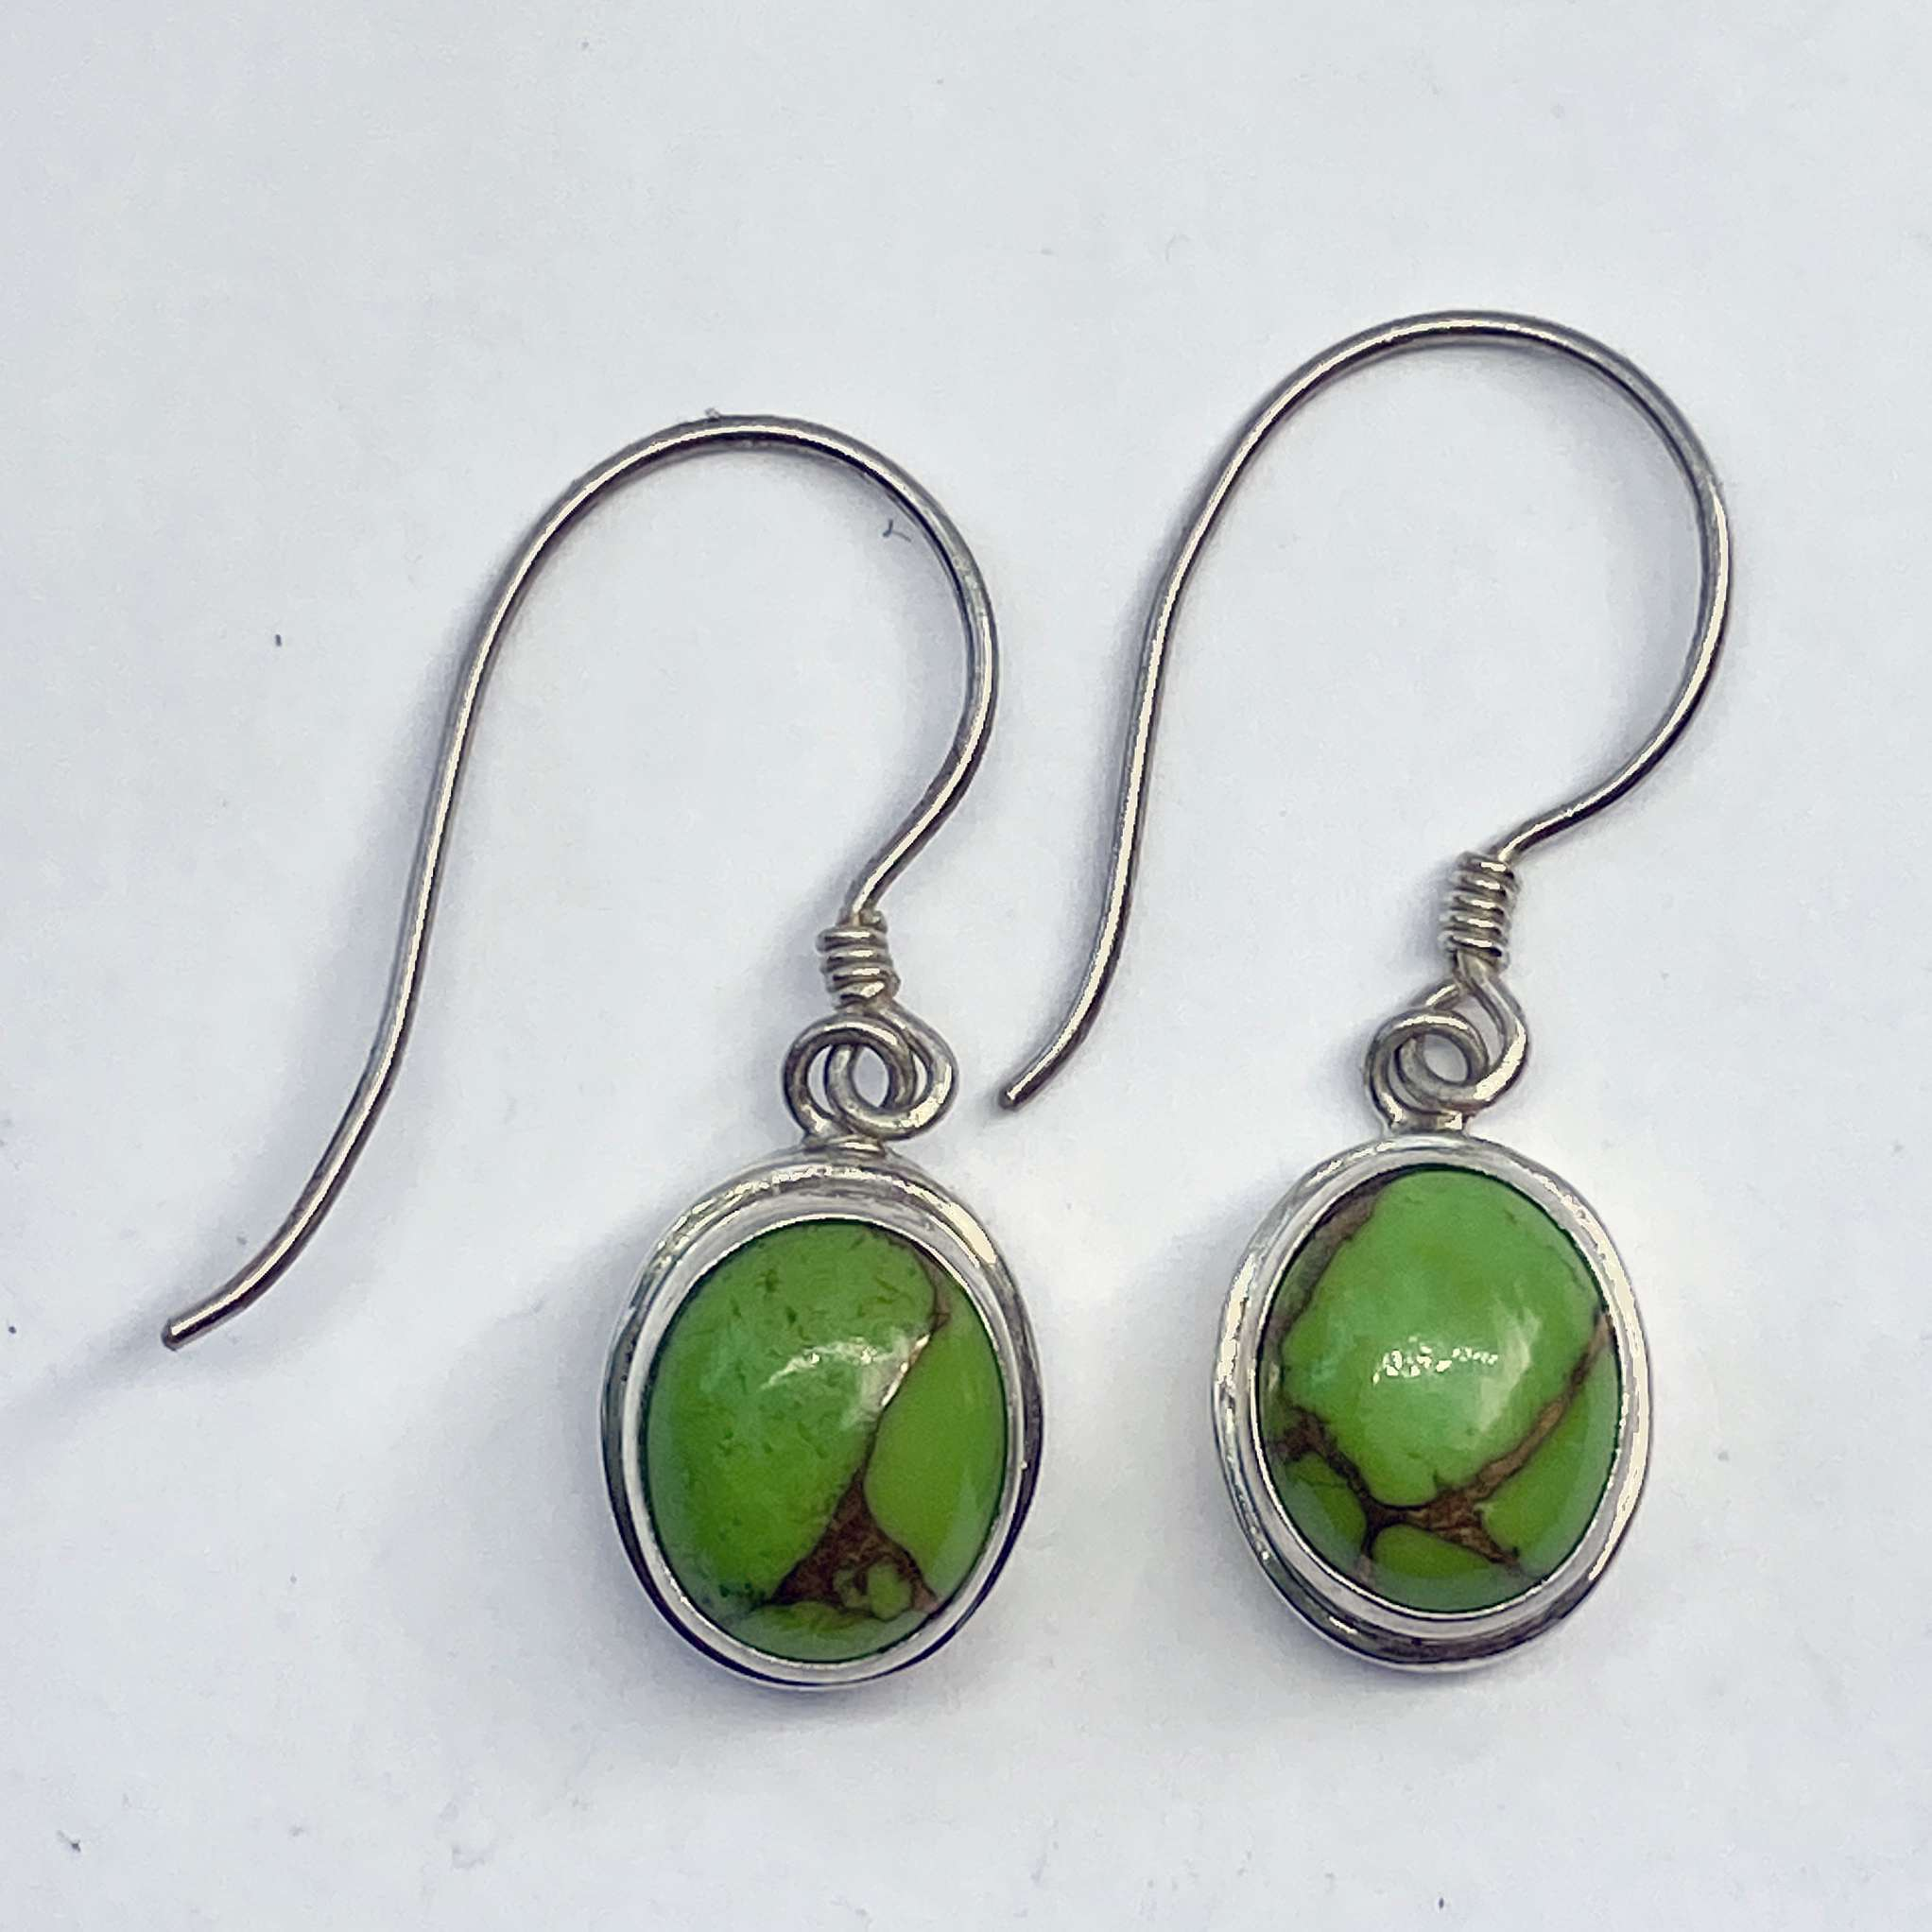 (HANDMADE 925 BALI STERLING SILVER EARRINGS WITH MOHAVE)